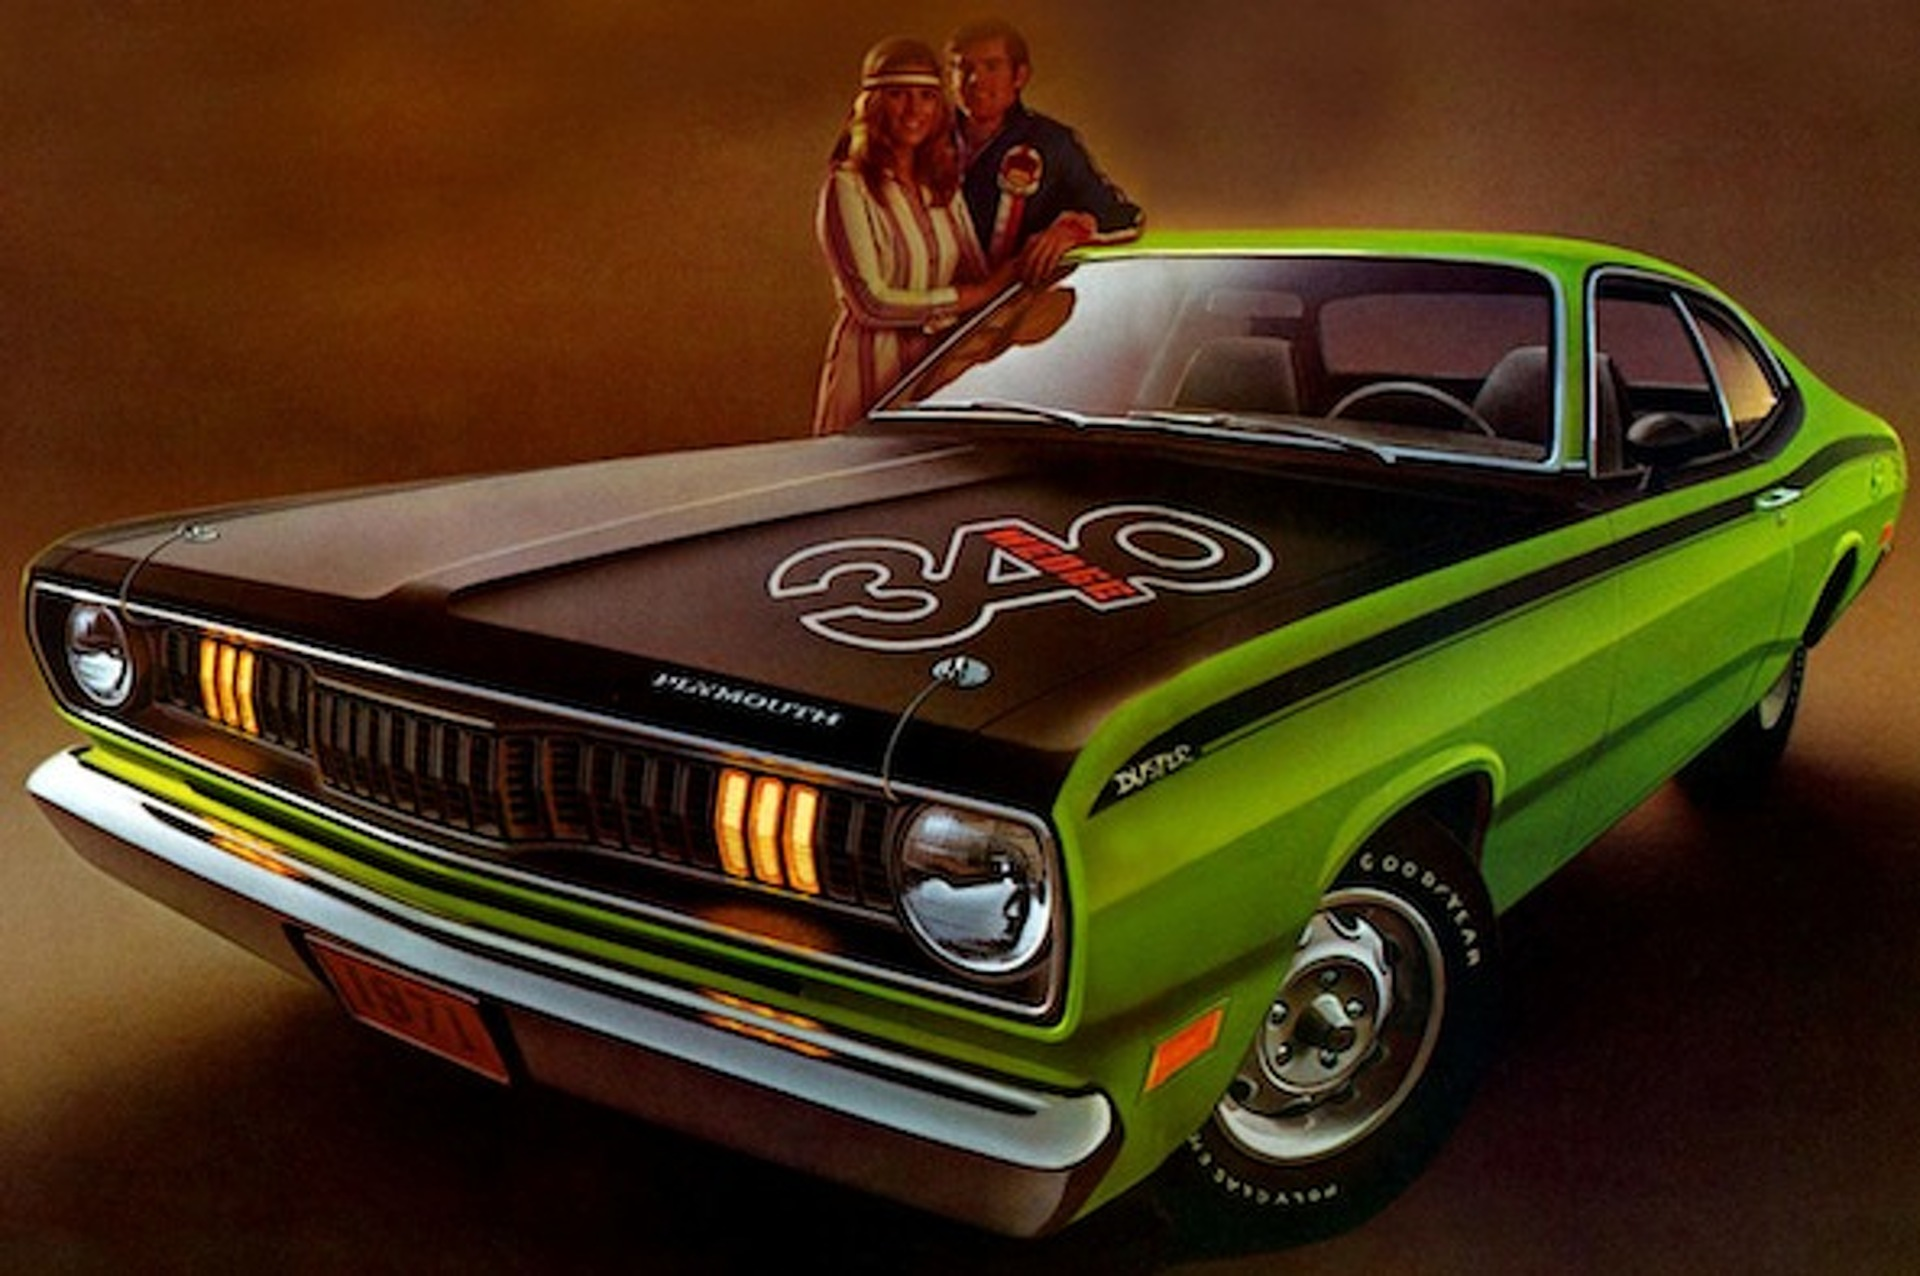 1970 Plymouth Duster: When a Young Man's Fancy Turned to Speed